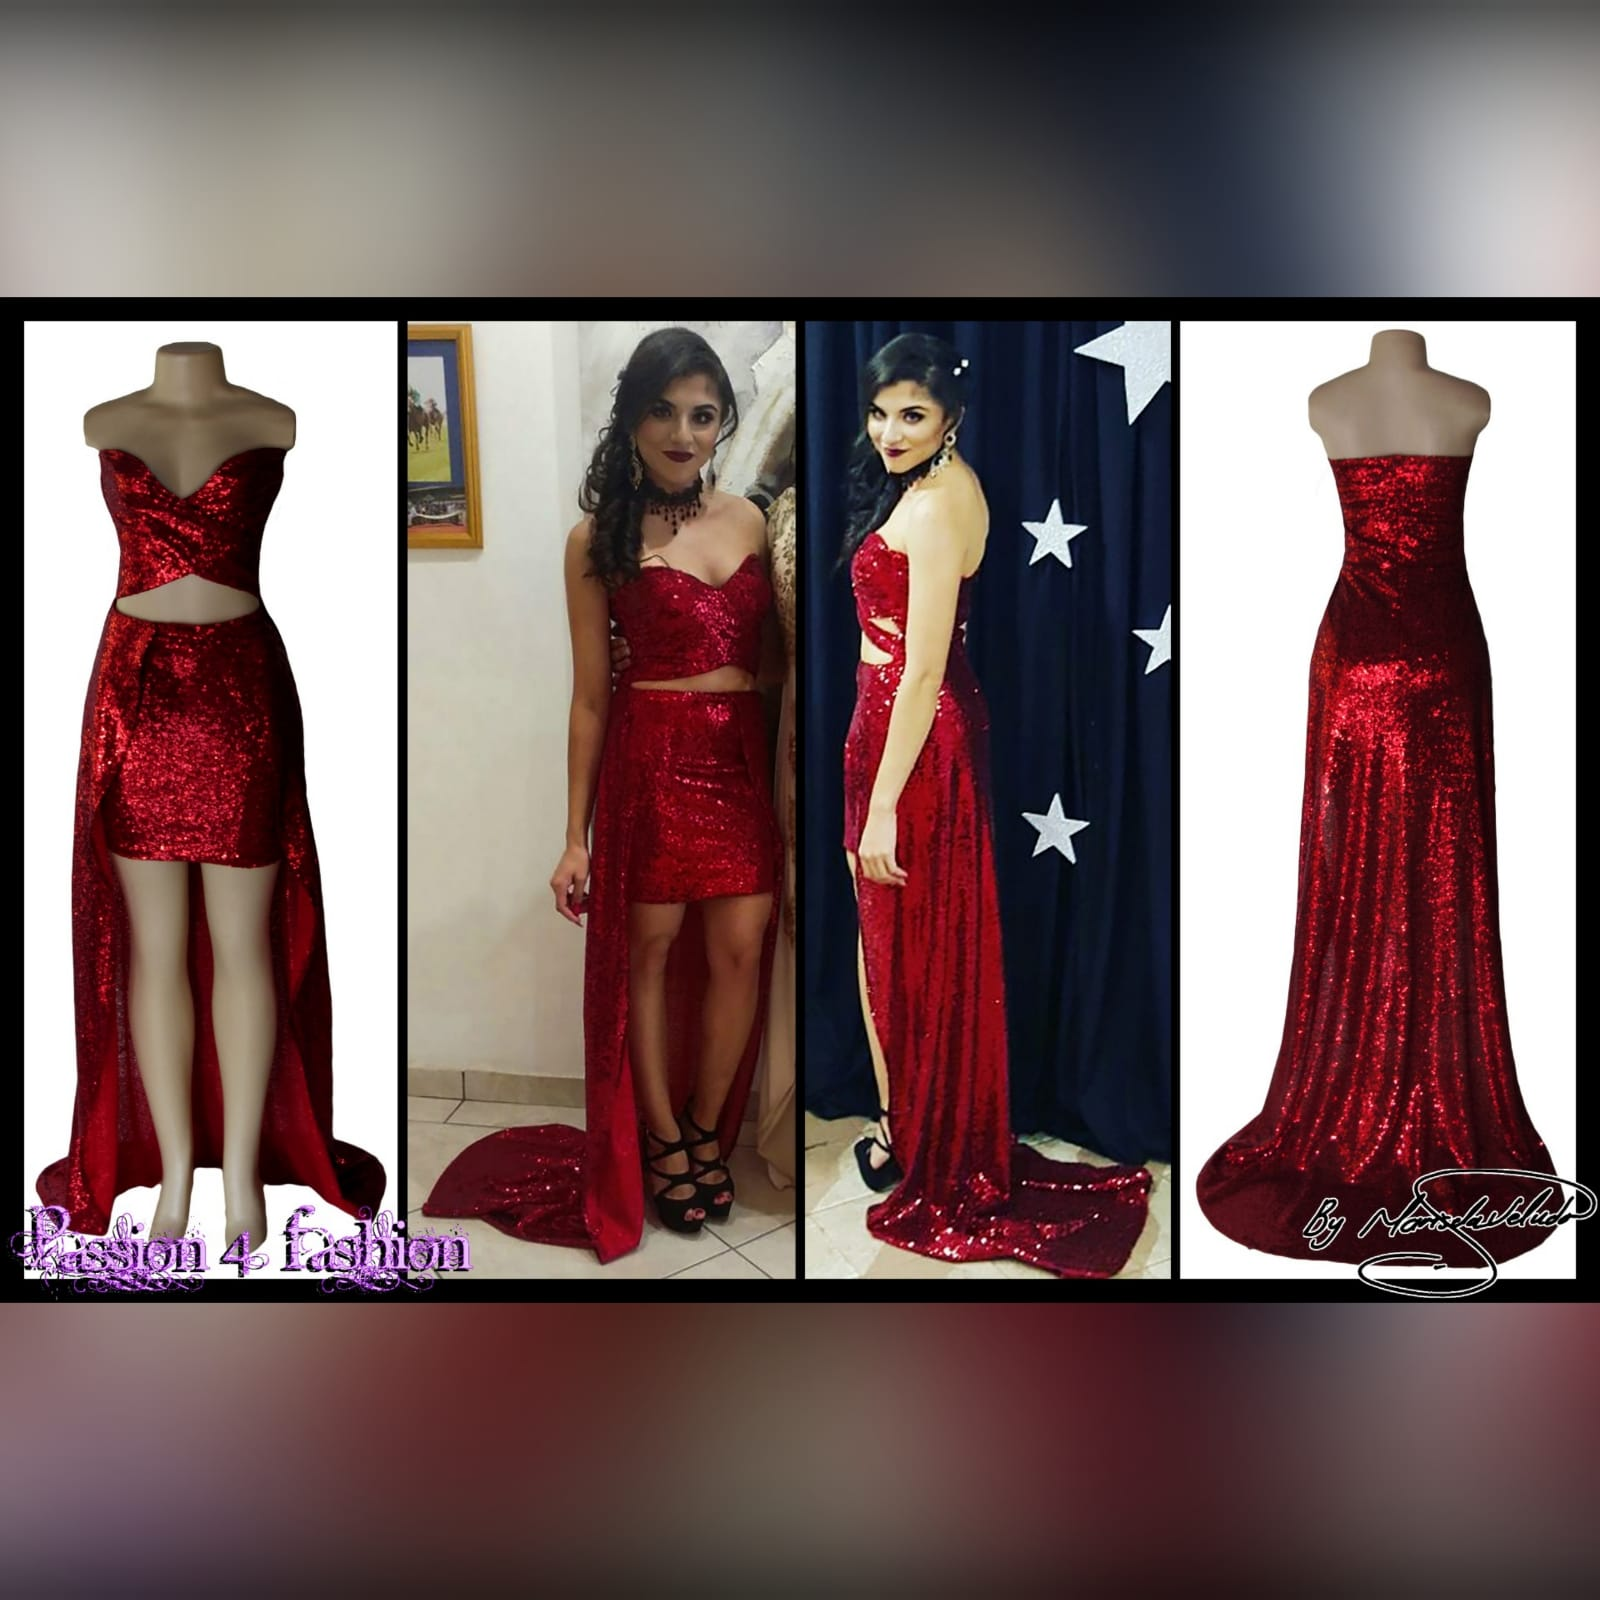 21st birthday party evening dress in red 5 red fully sequins evening dress for a 21st birthday party. The dress creates the illusion of a 2 piece with a cross busted bodice showing tummy, a short pencil skirt with a back overlayer creating a train.